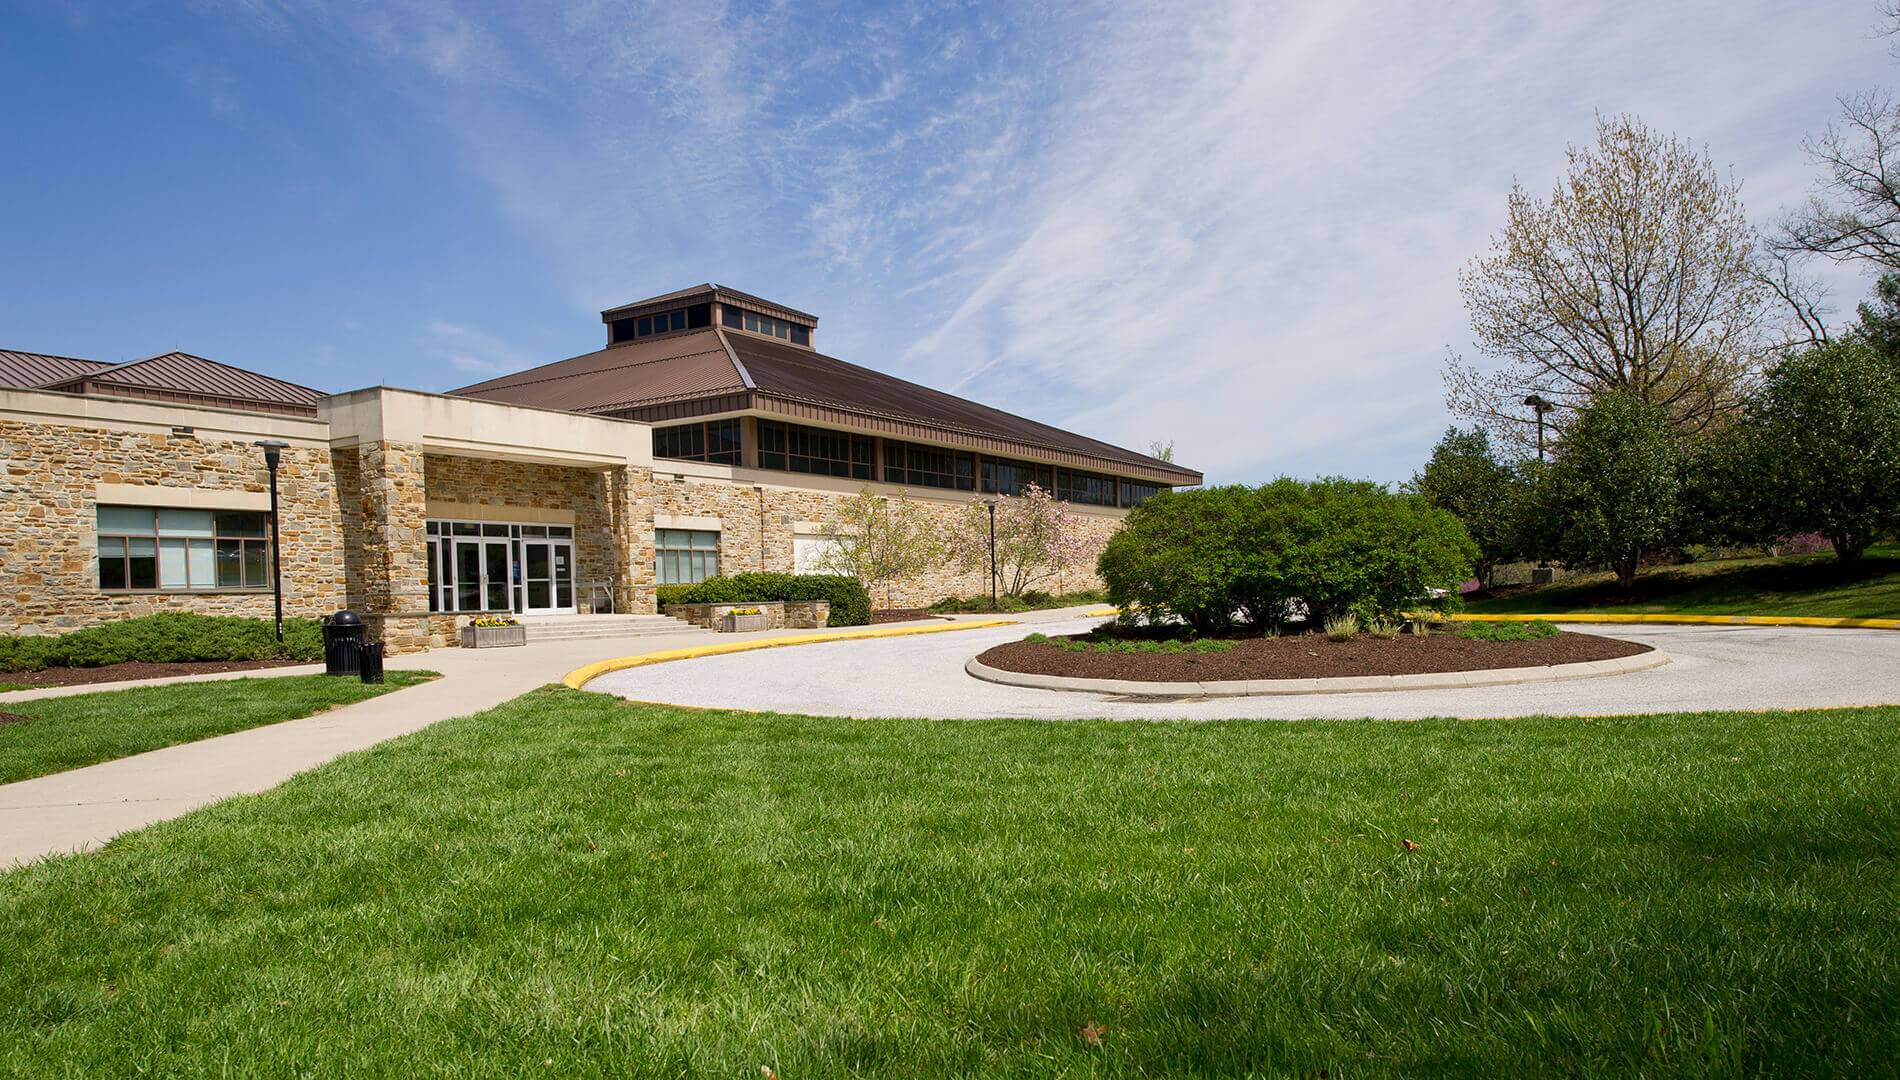 Goucher College Sports and Recreation Center